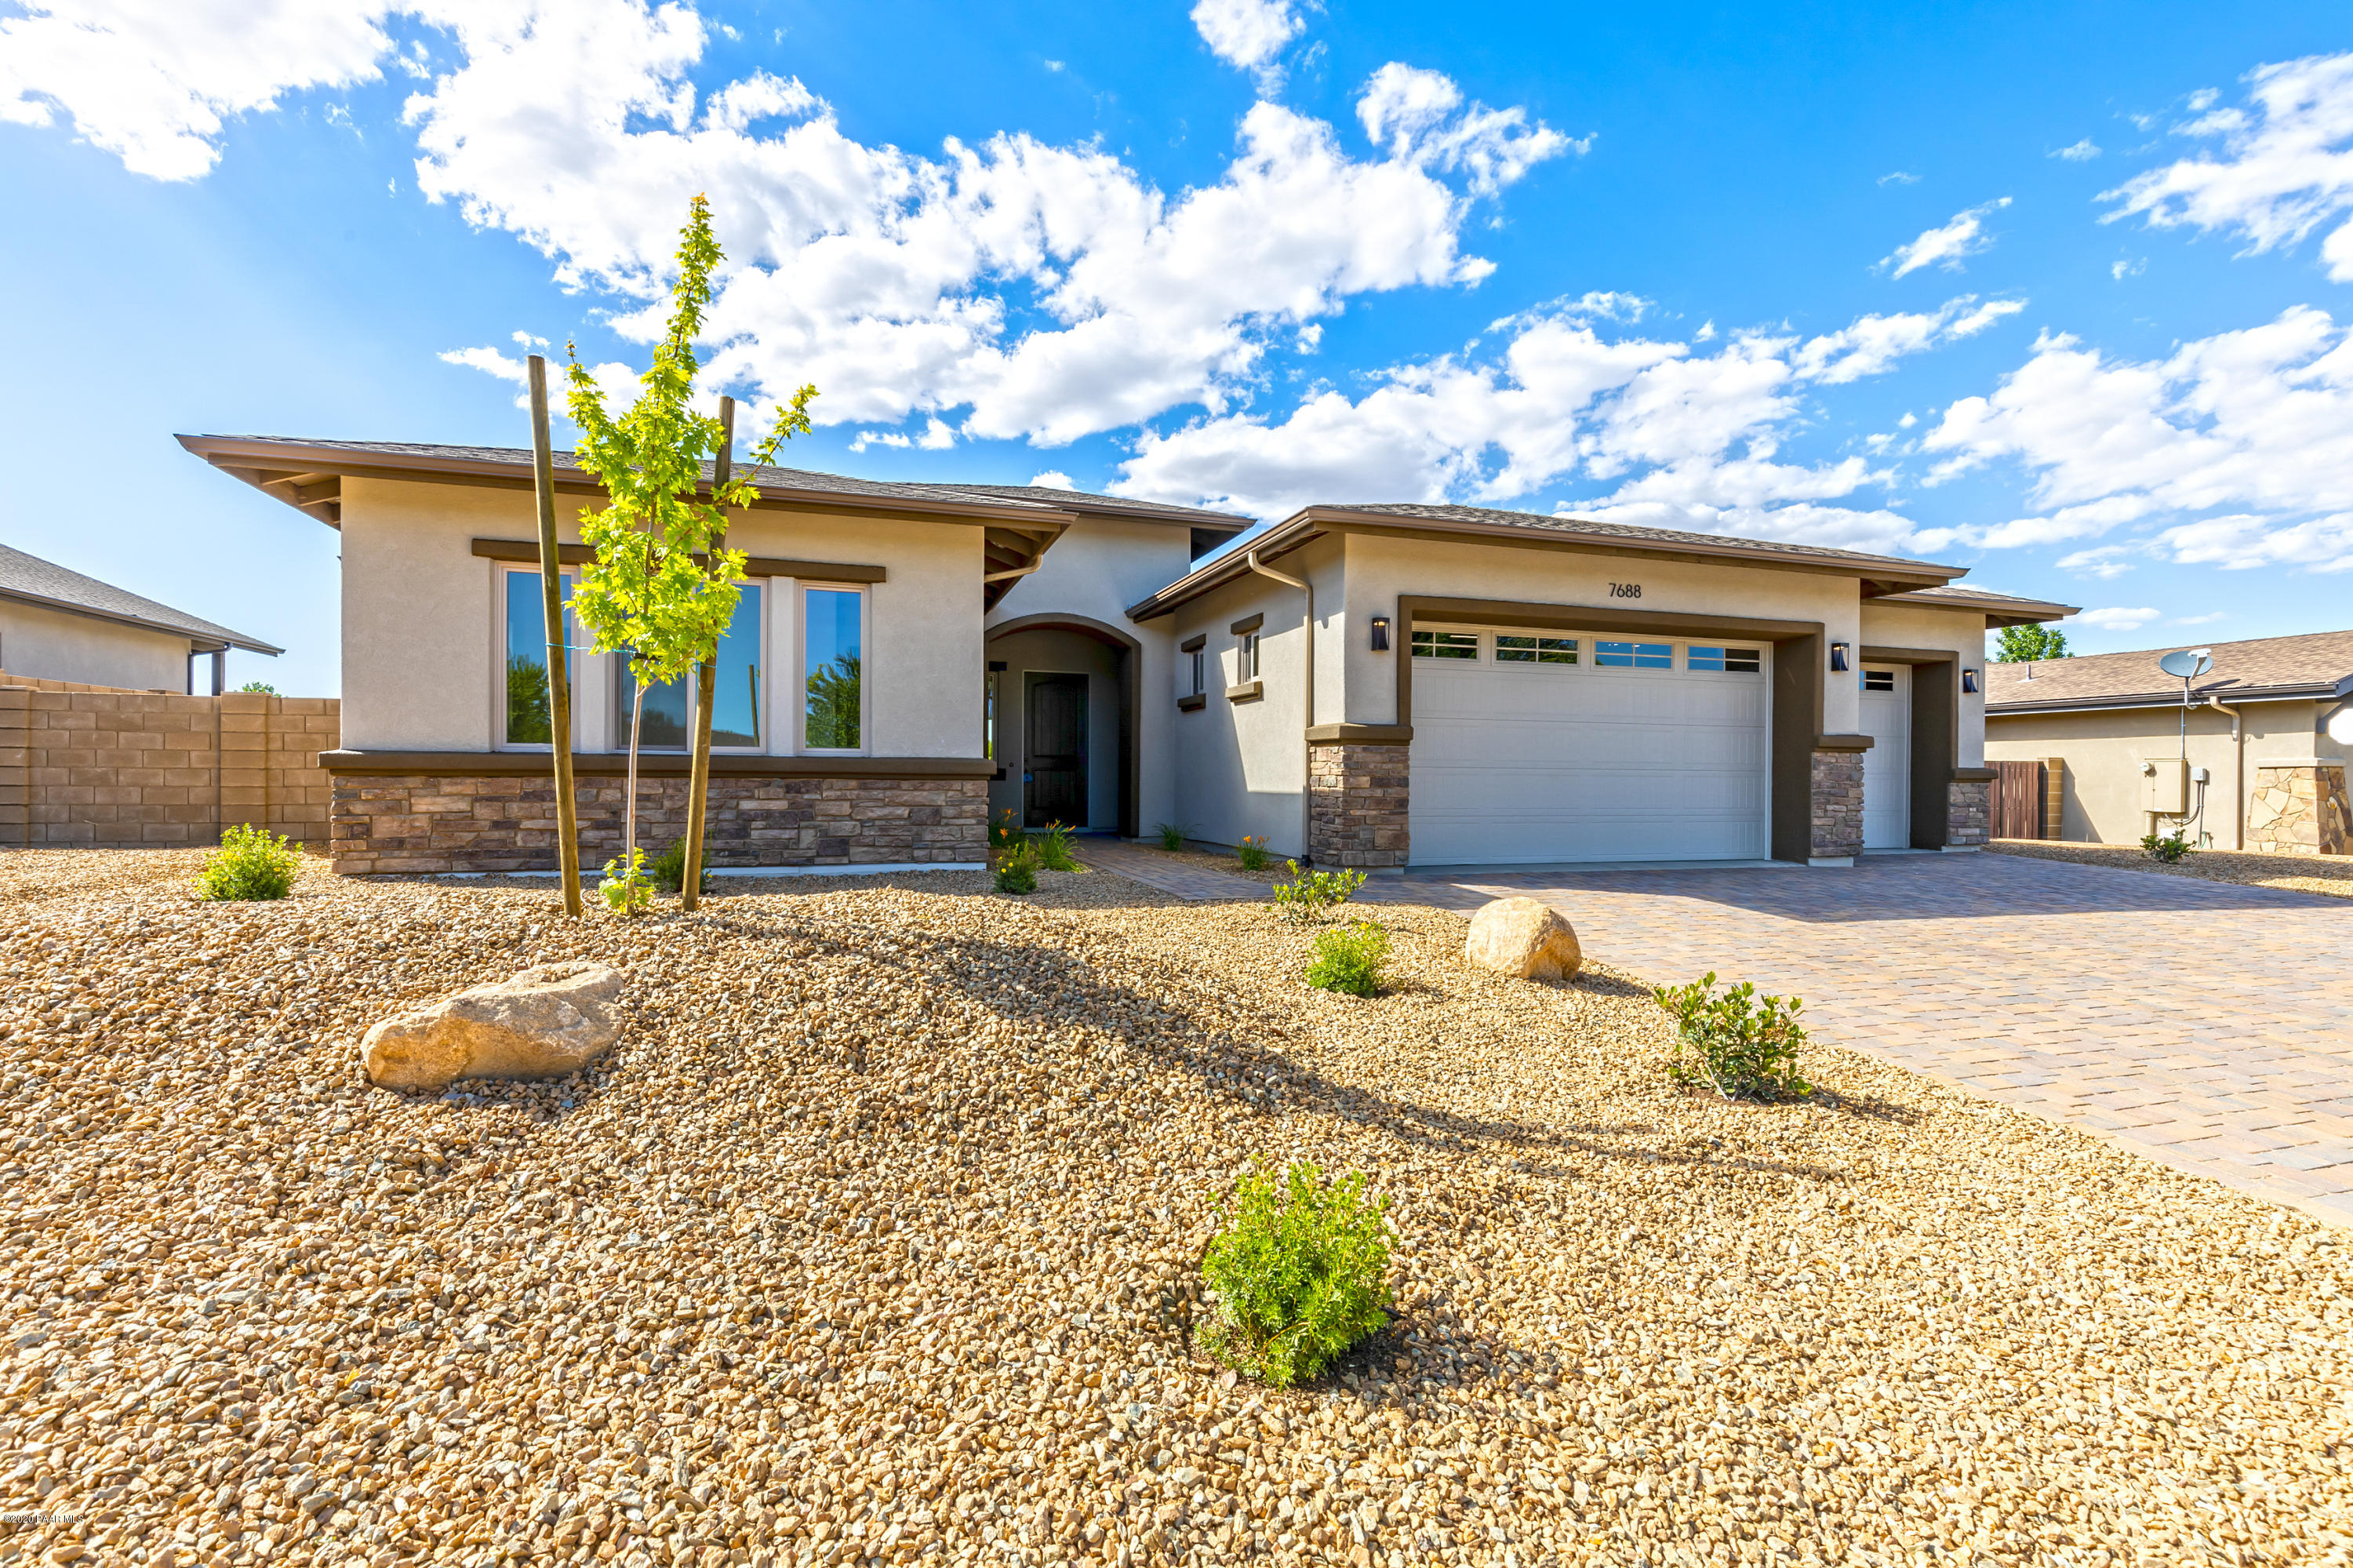 Photo of 7688 Mesteno, Prescott Valley, AZ 86315